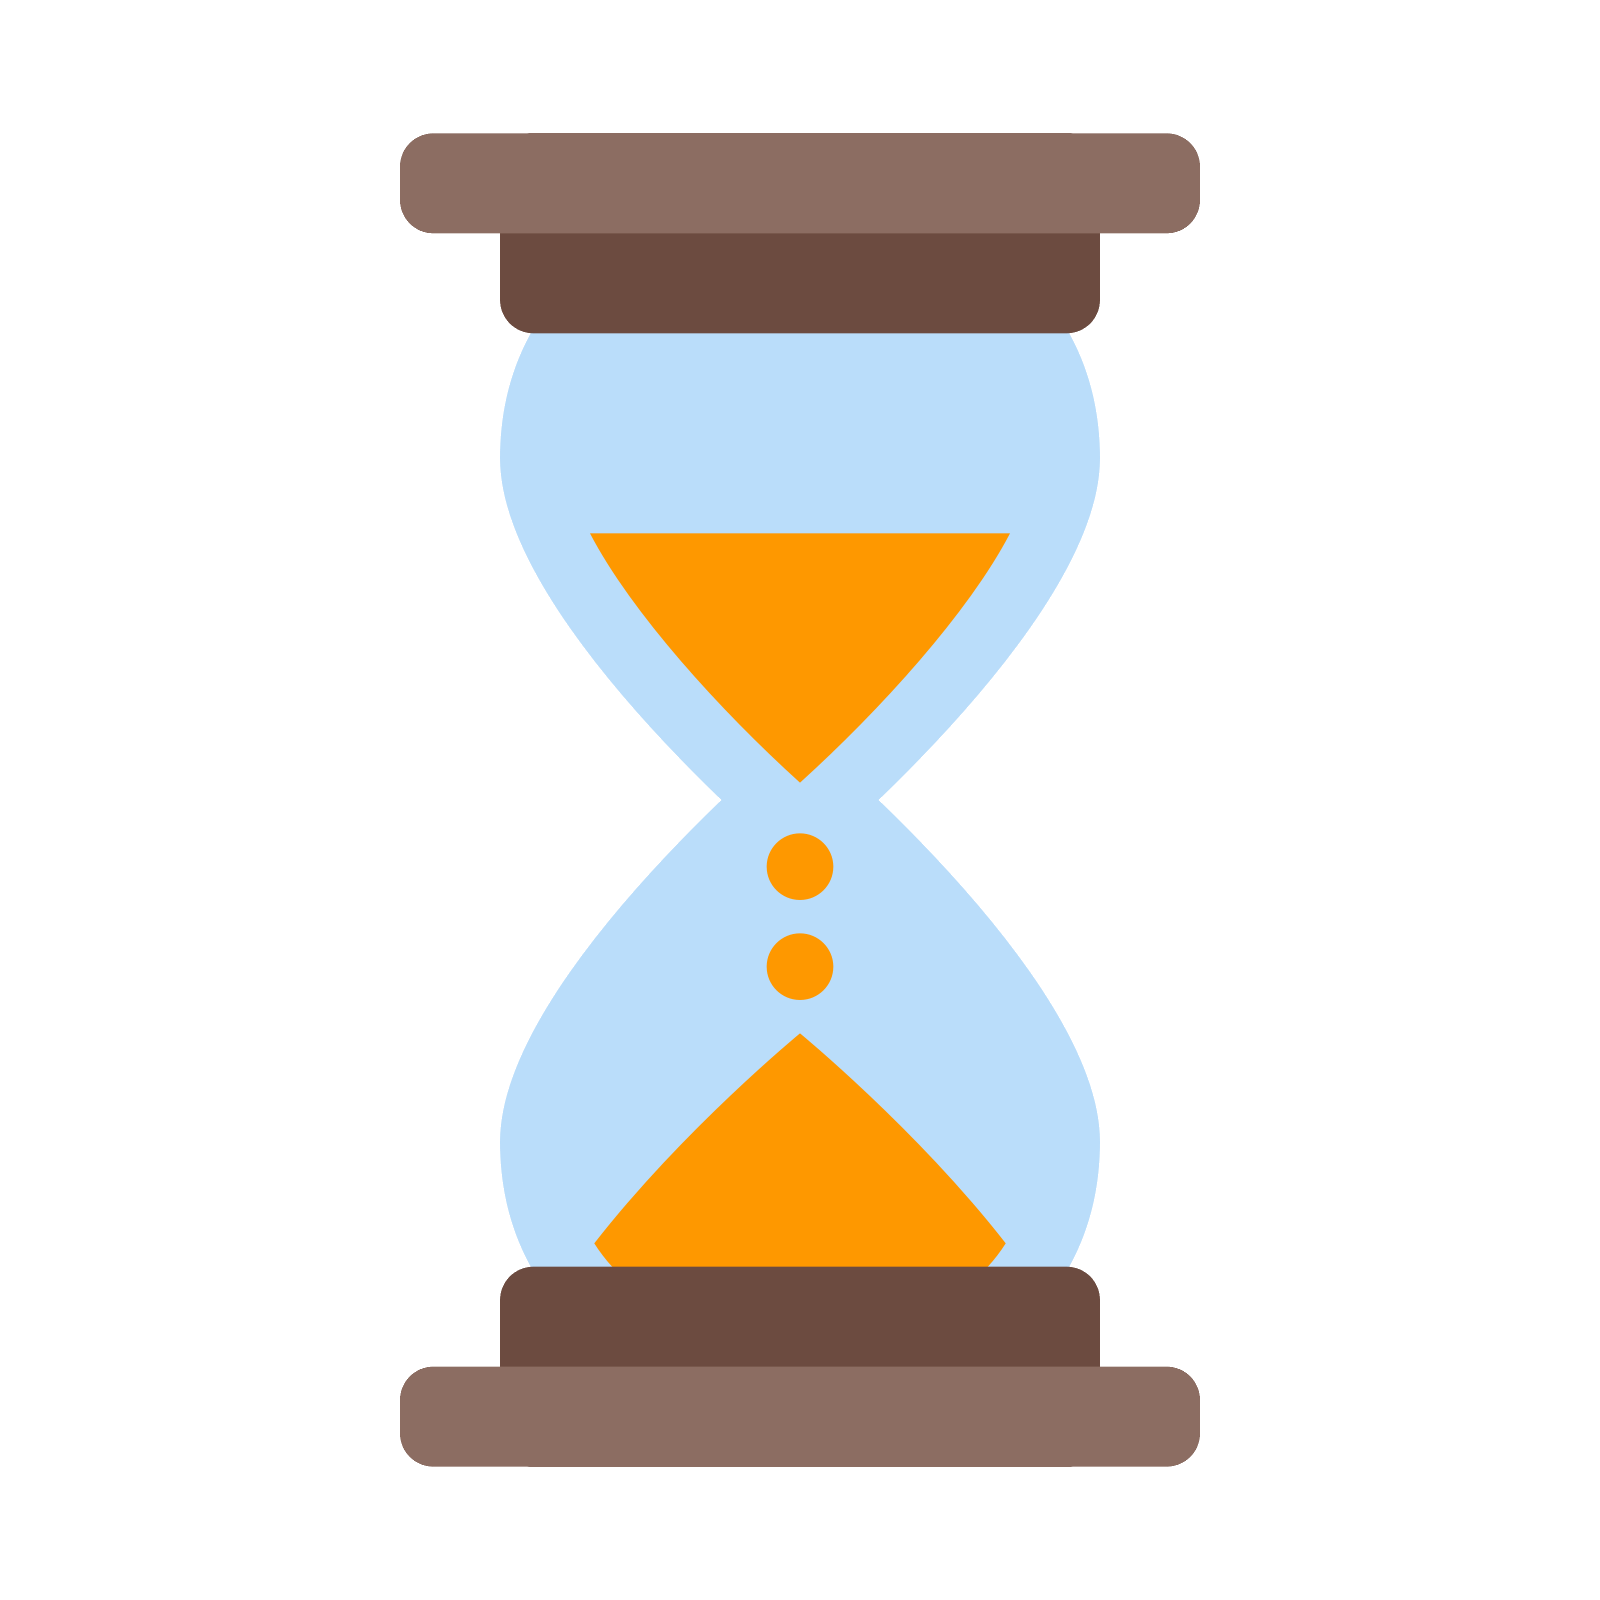 Hourglass clipart chronometer. Computer icons portable document